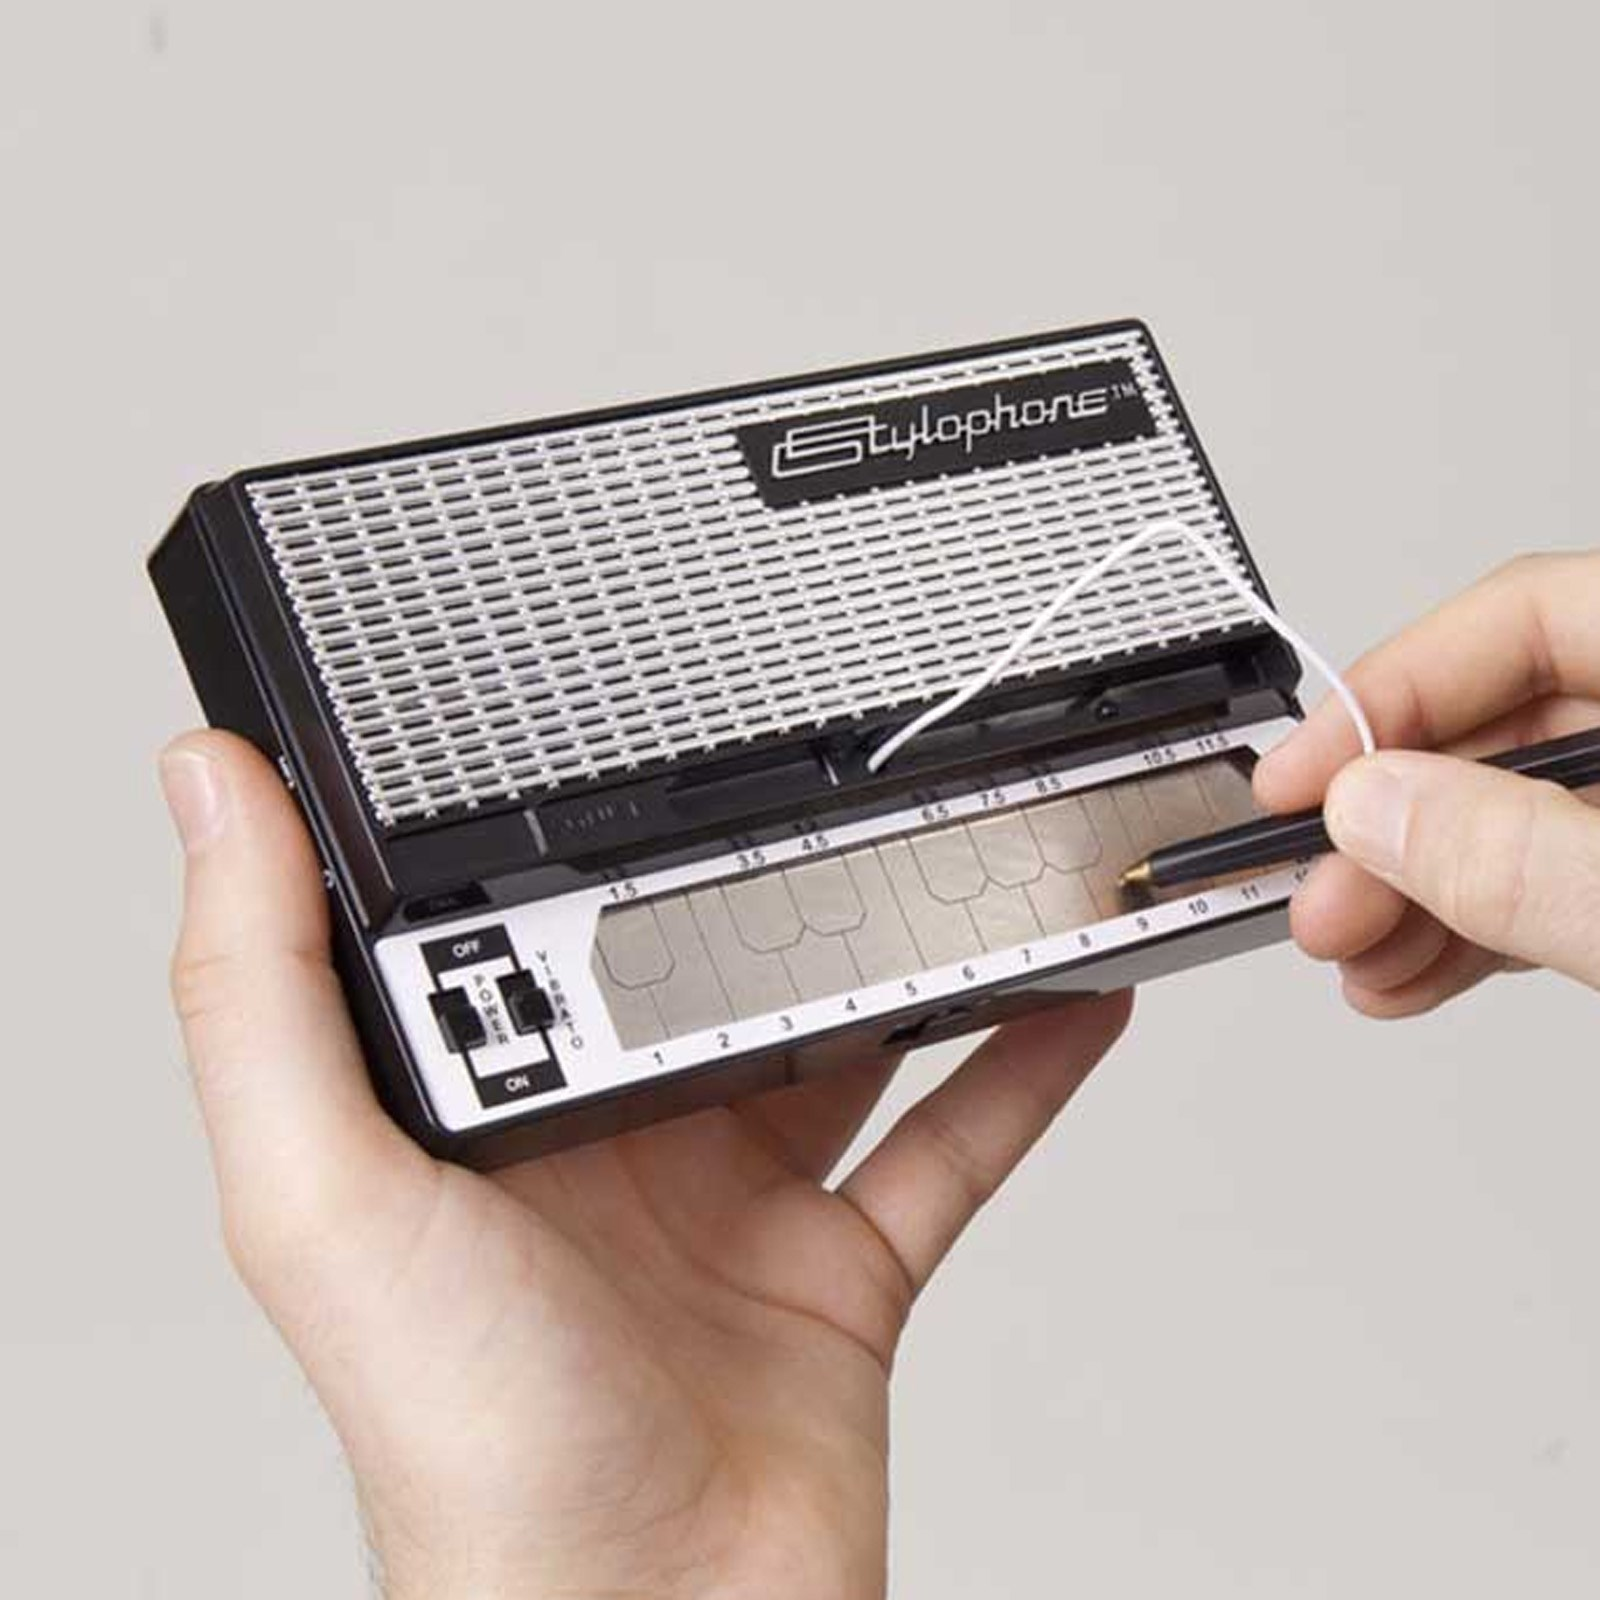 Click to view stylophone s-1